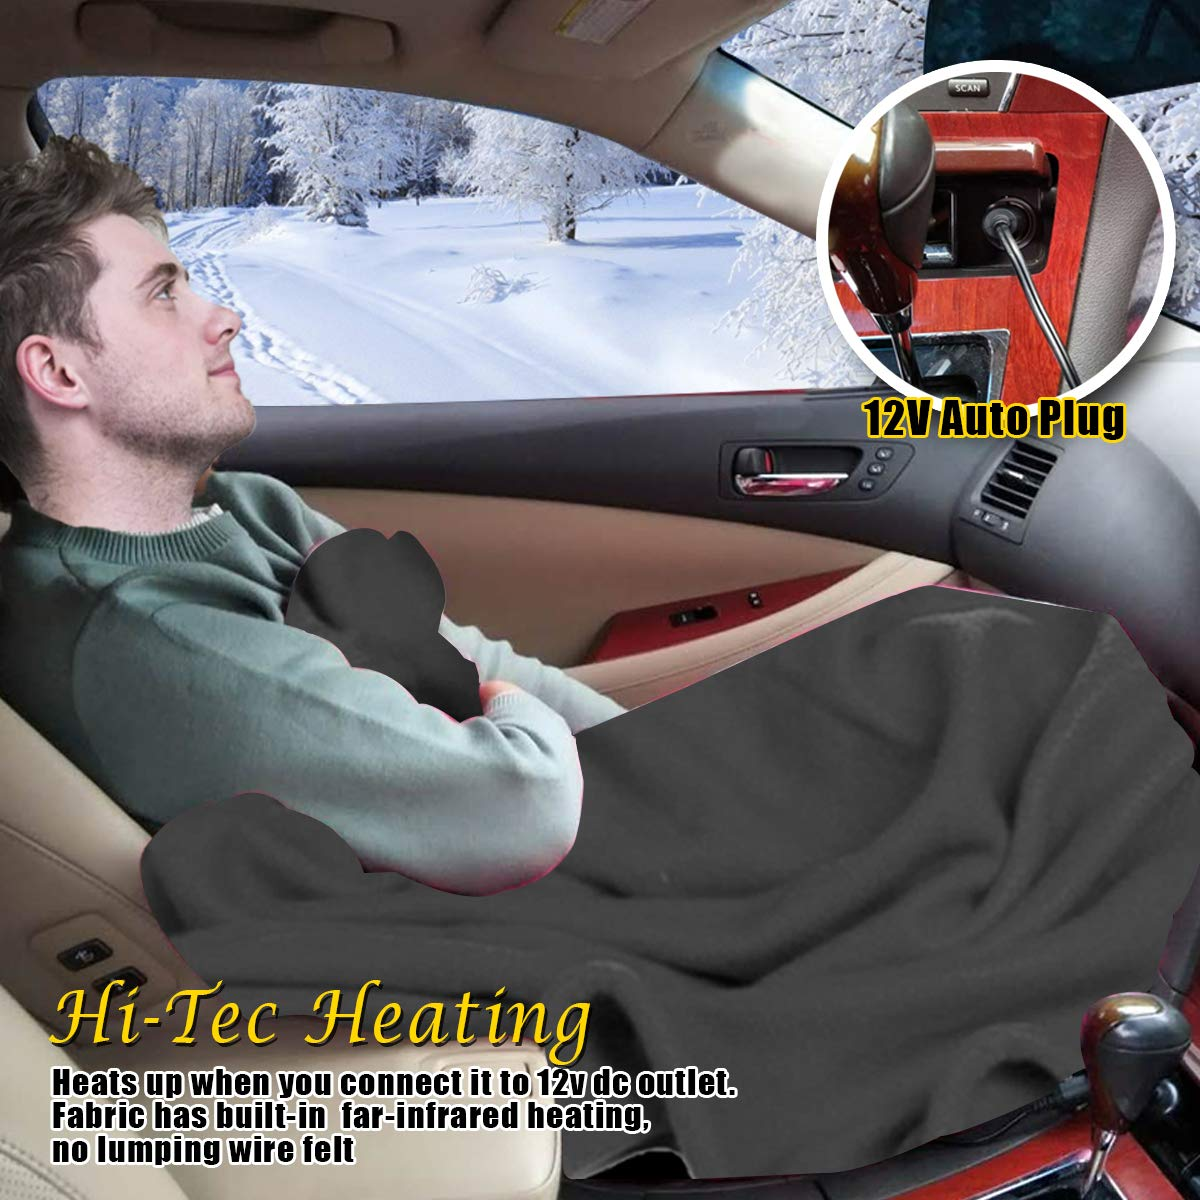 Anti-Flammable Material VaygWay 12V Car Heated Blanket Electric Fleece Travel Blanket Throw Auto Vehicle Road Trip RV Soft Polar Fleece Cold Weather